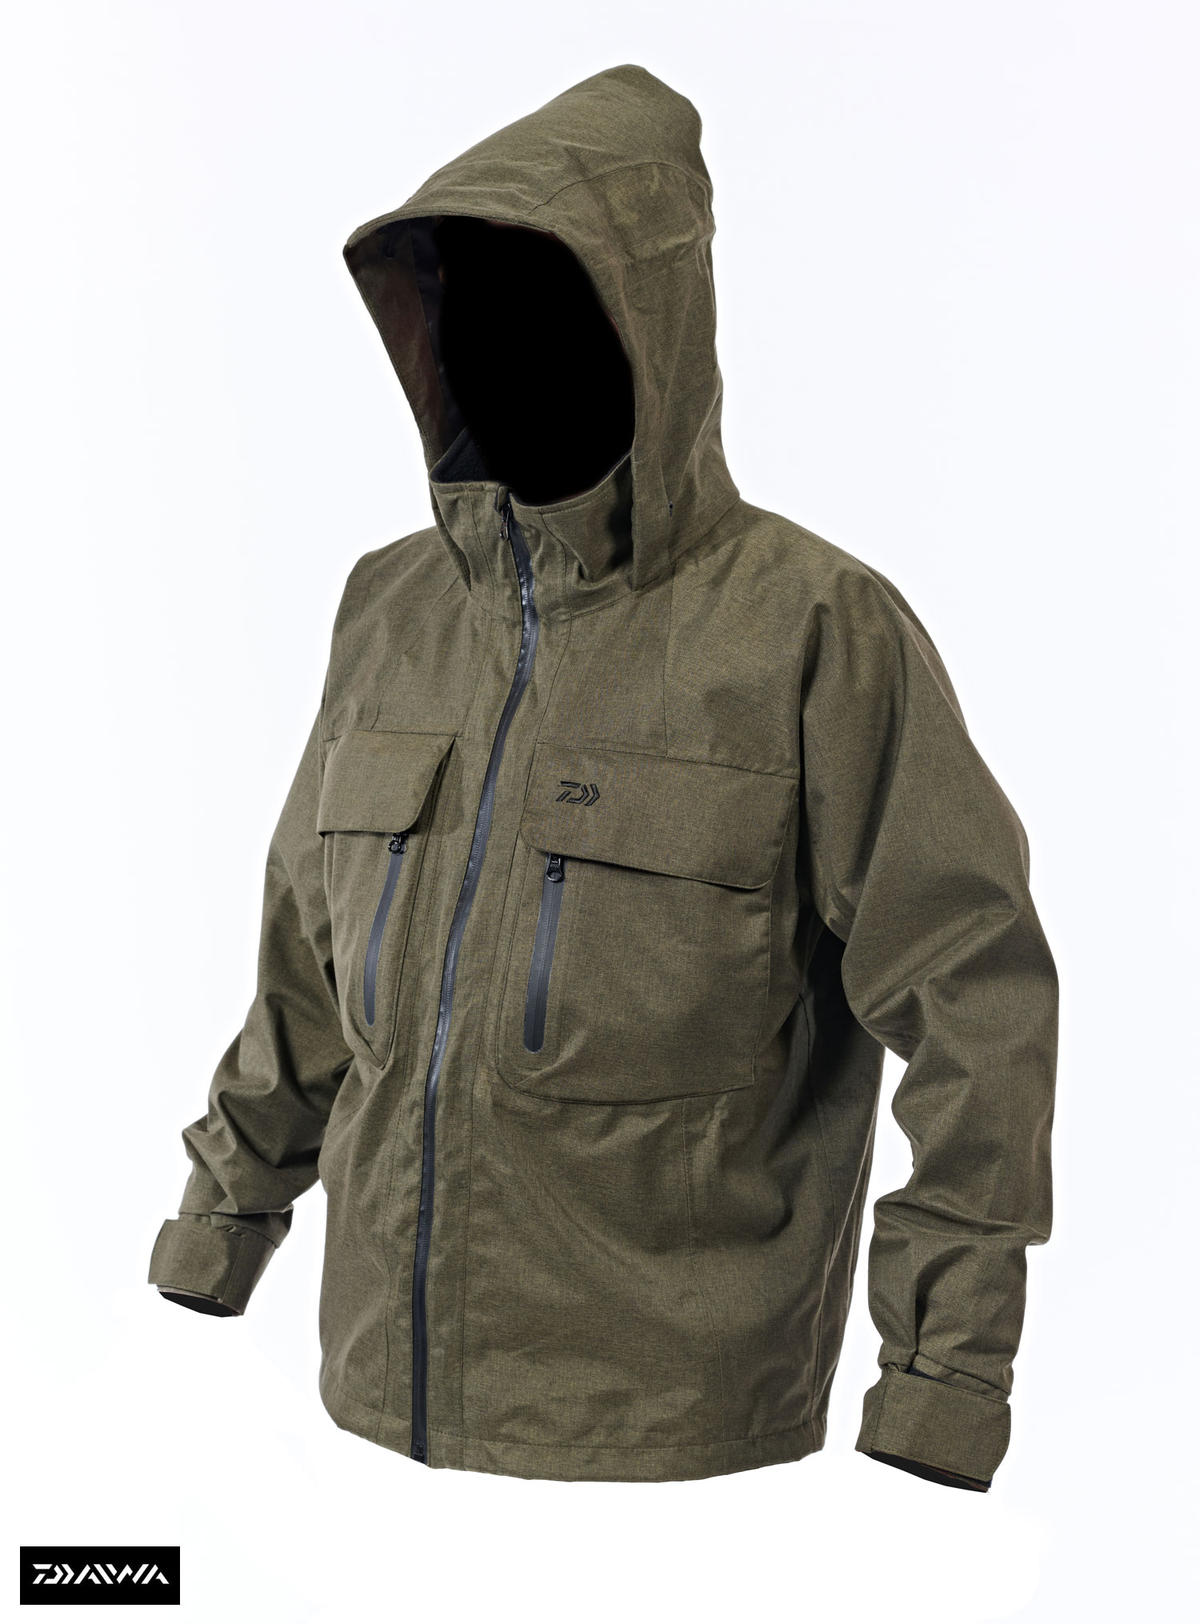 New Daiwa Game Breathable Wading Jacket - All Sizes - Medium - XXL